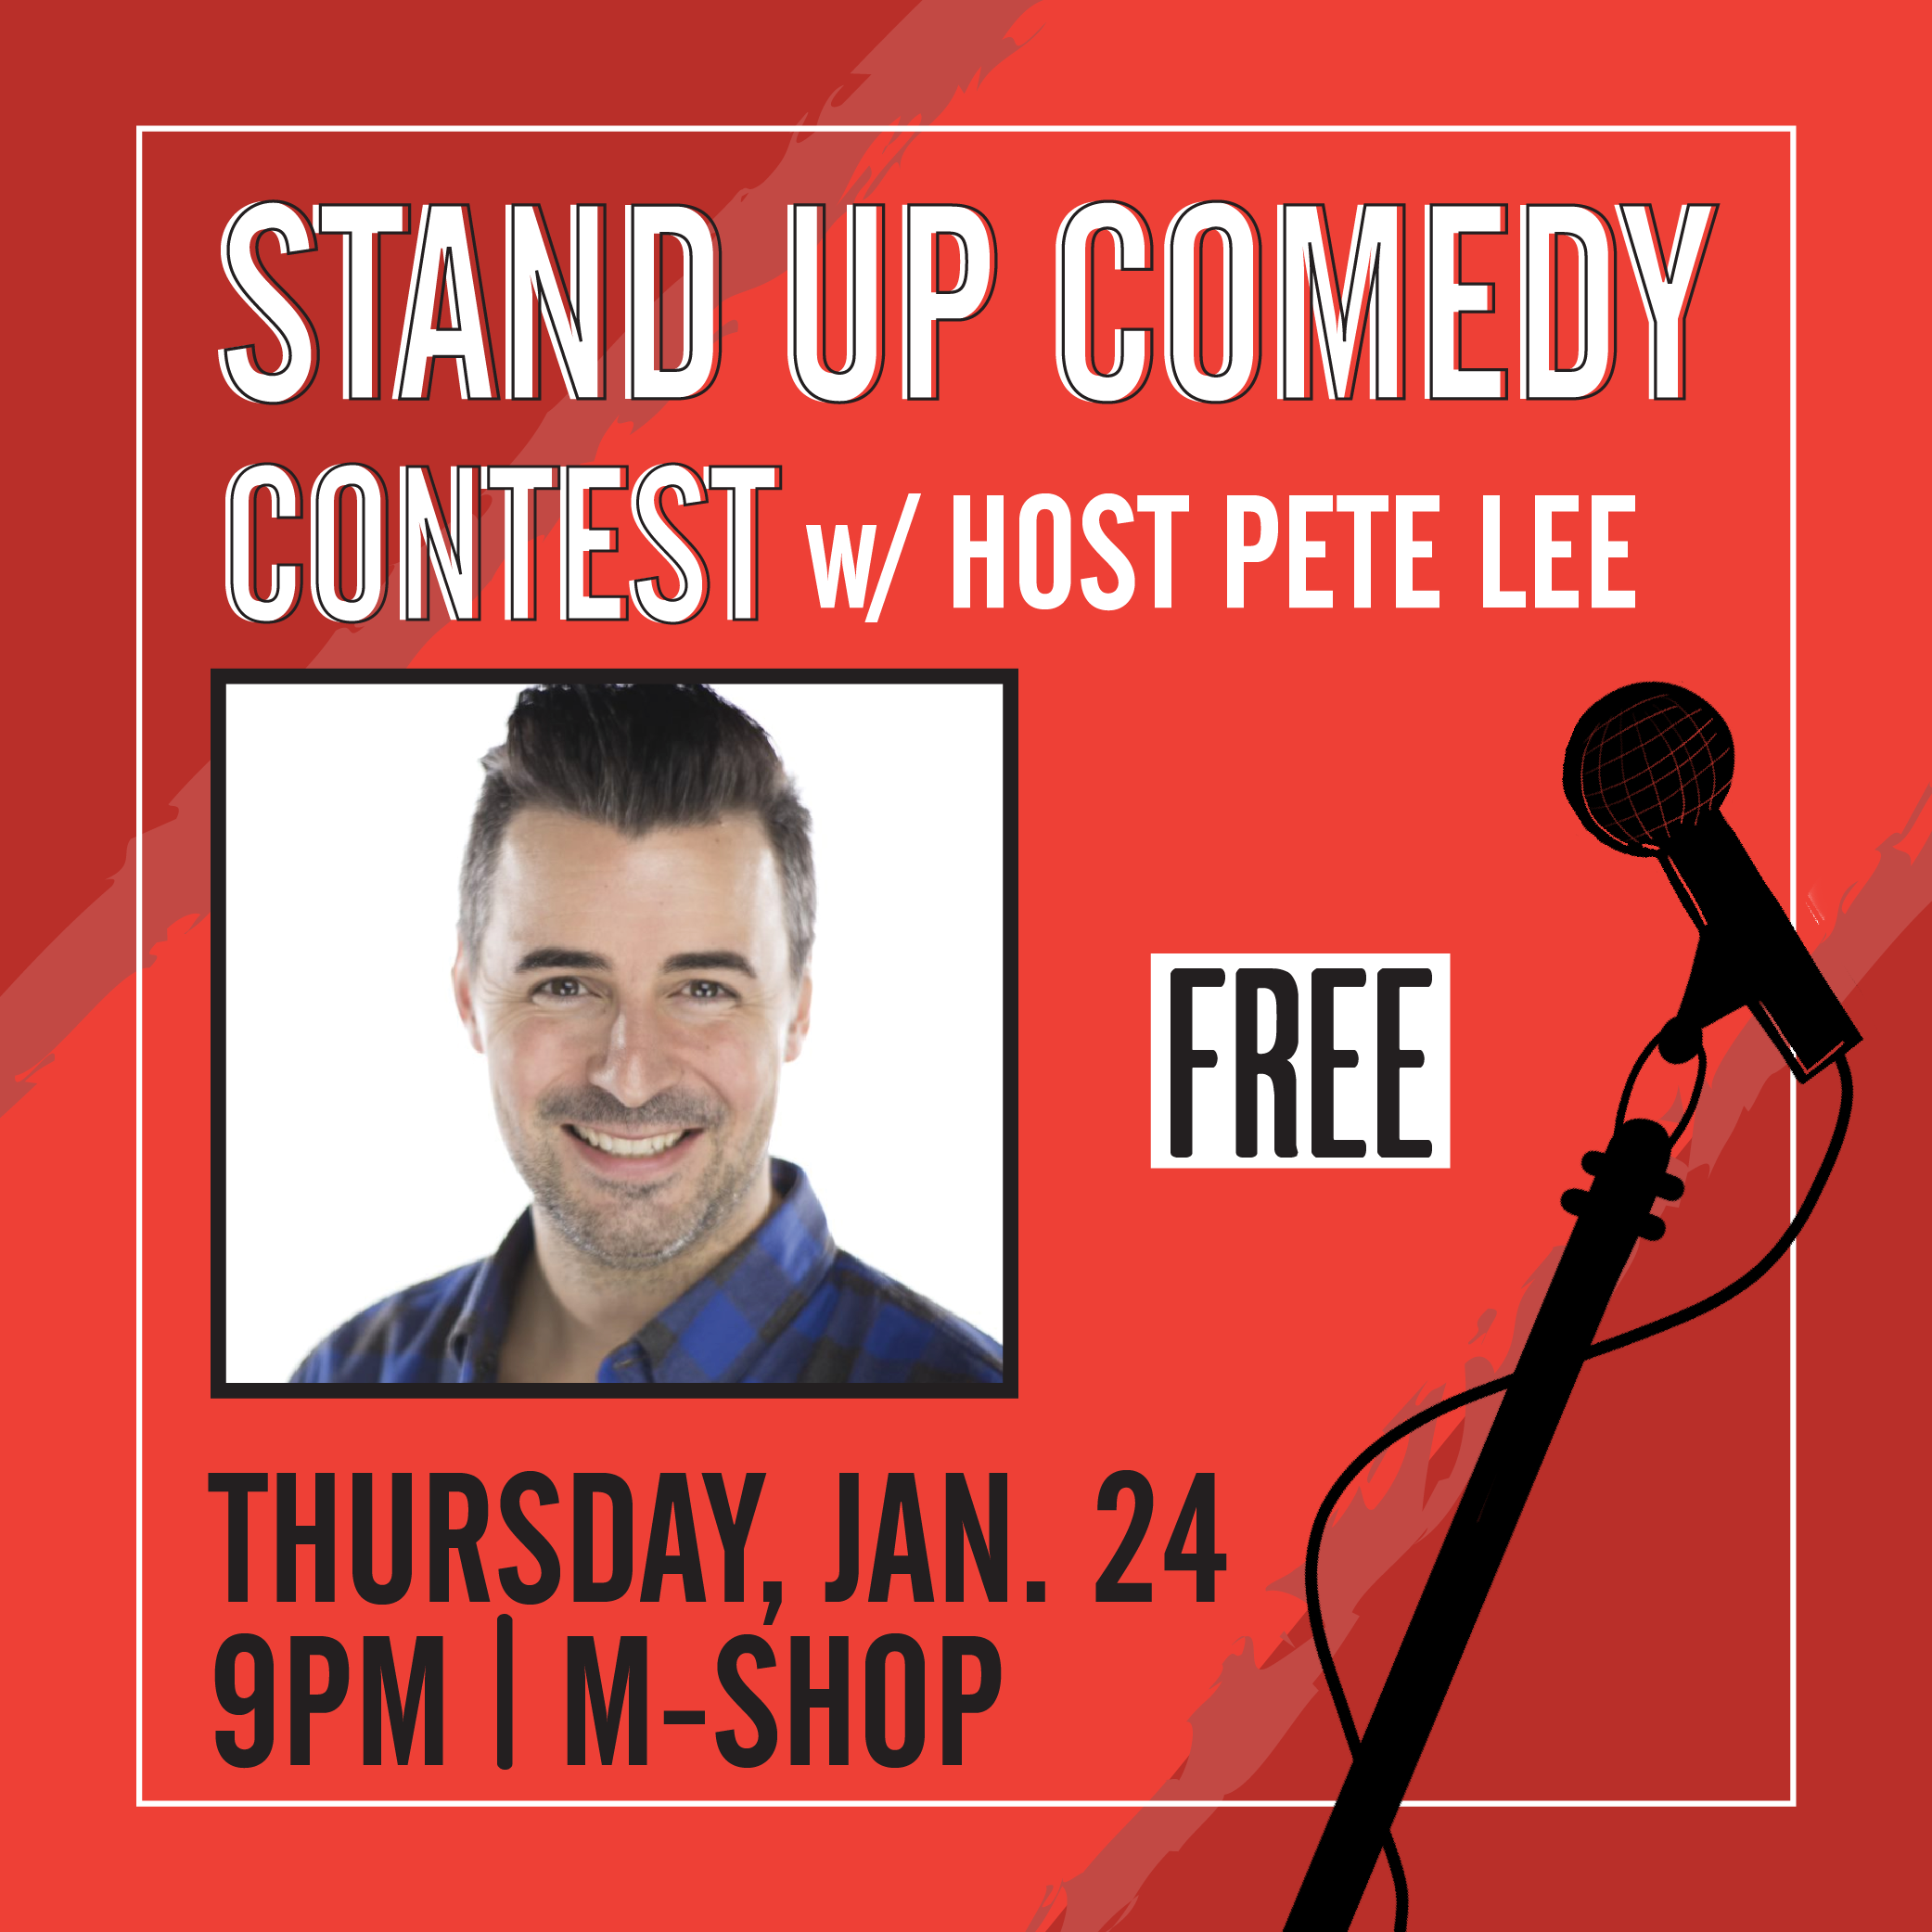 Stand Up Comedy Contest